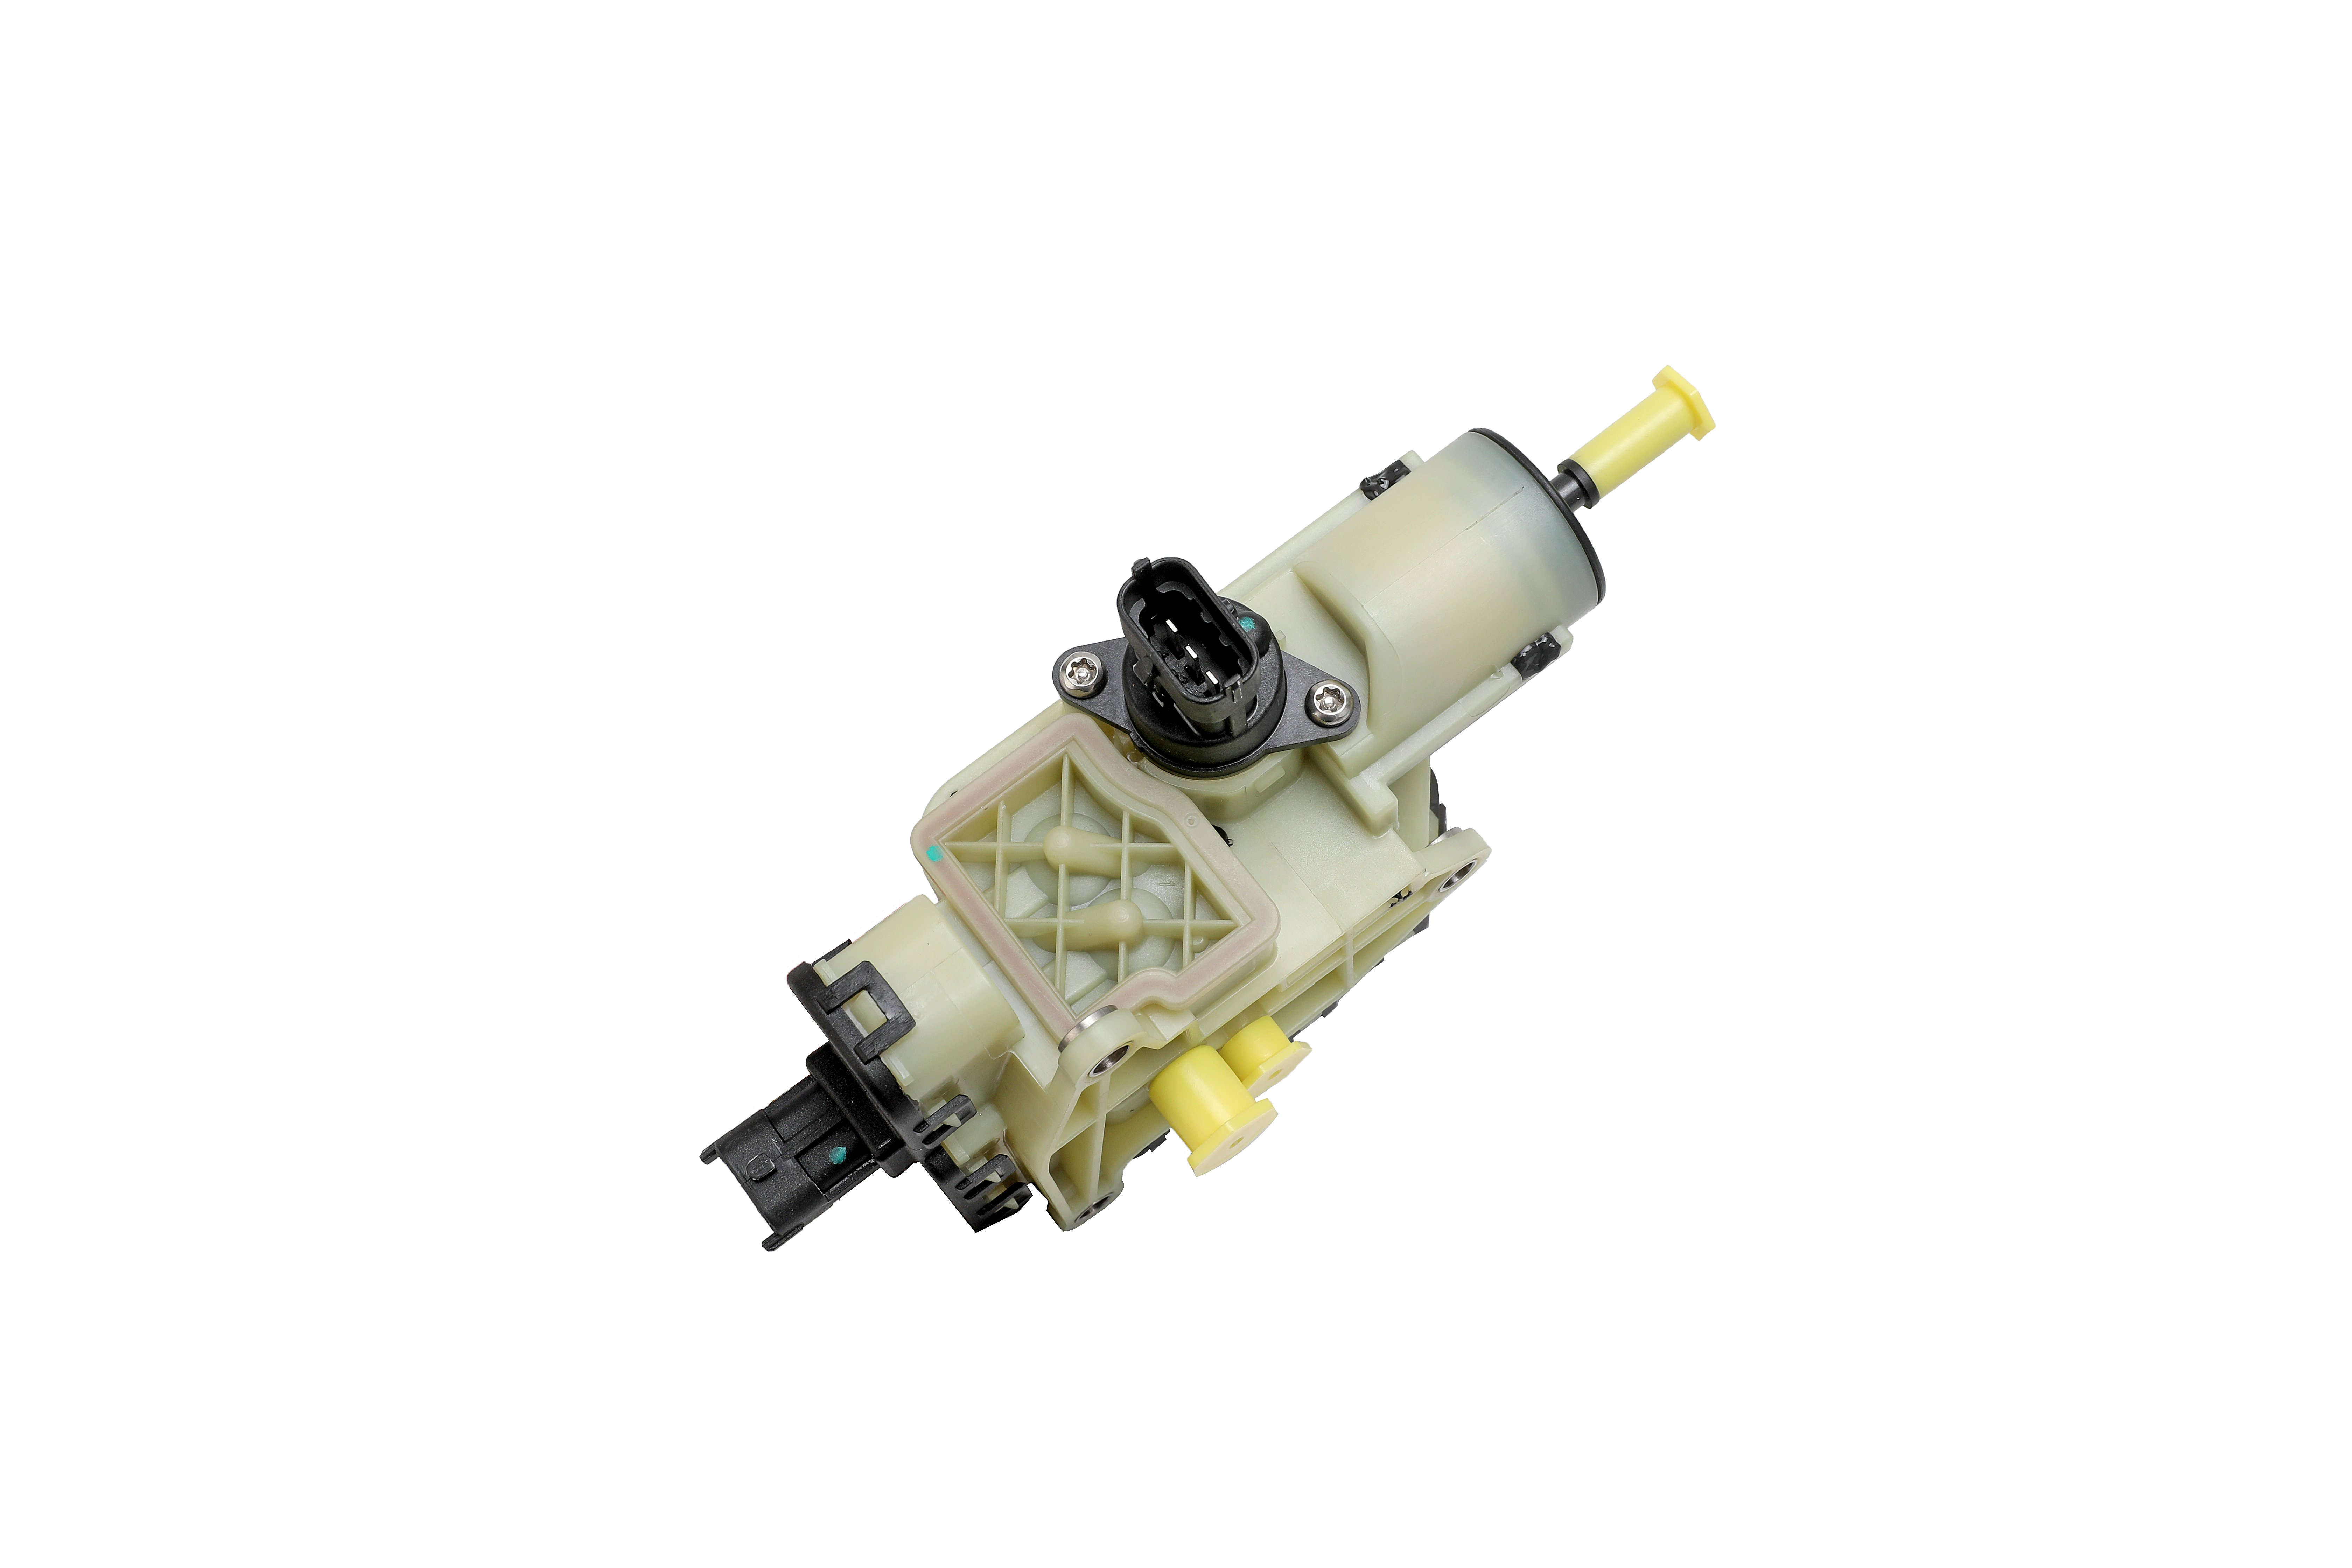 1500W Engine heater compatible with 2001 Ford F-250 Super Duty with 7.3L 445Cu In V8 DIESEL